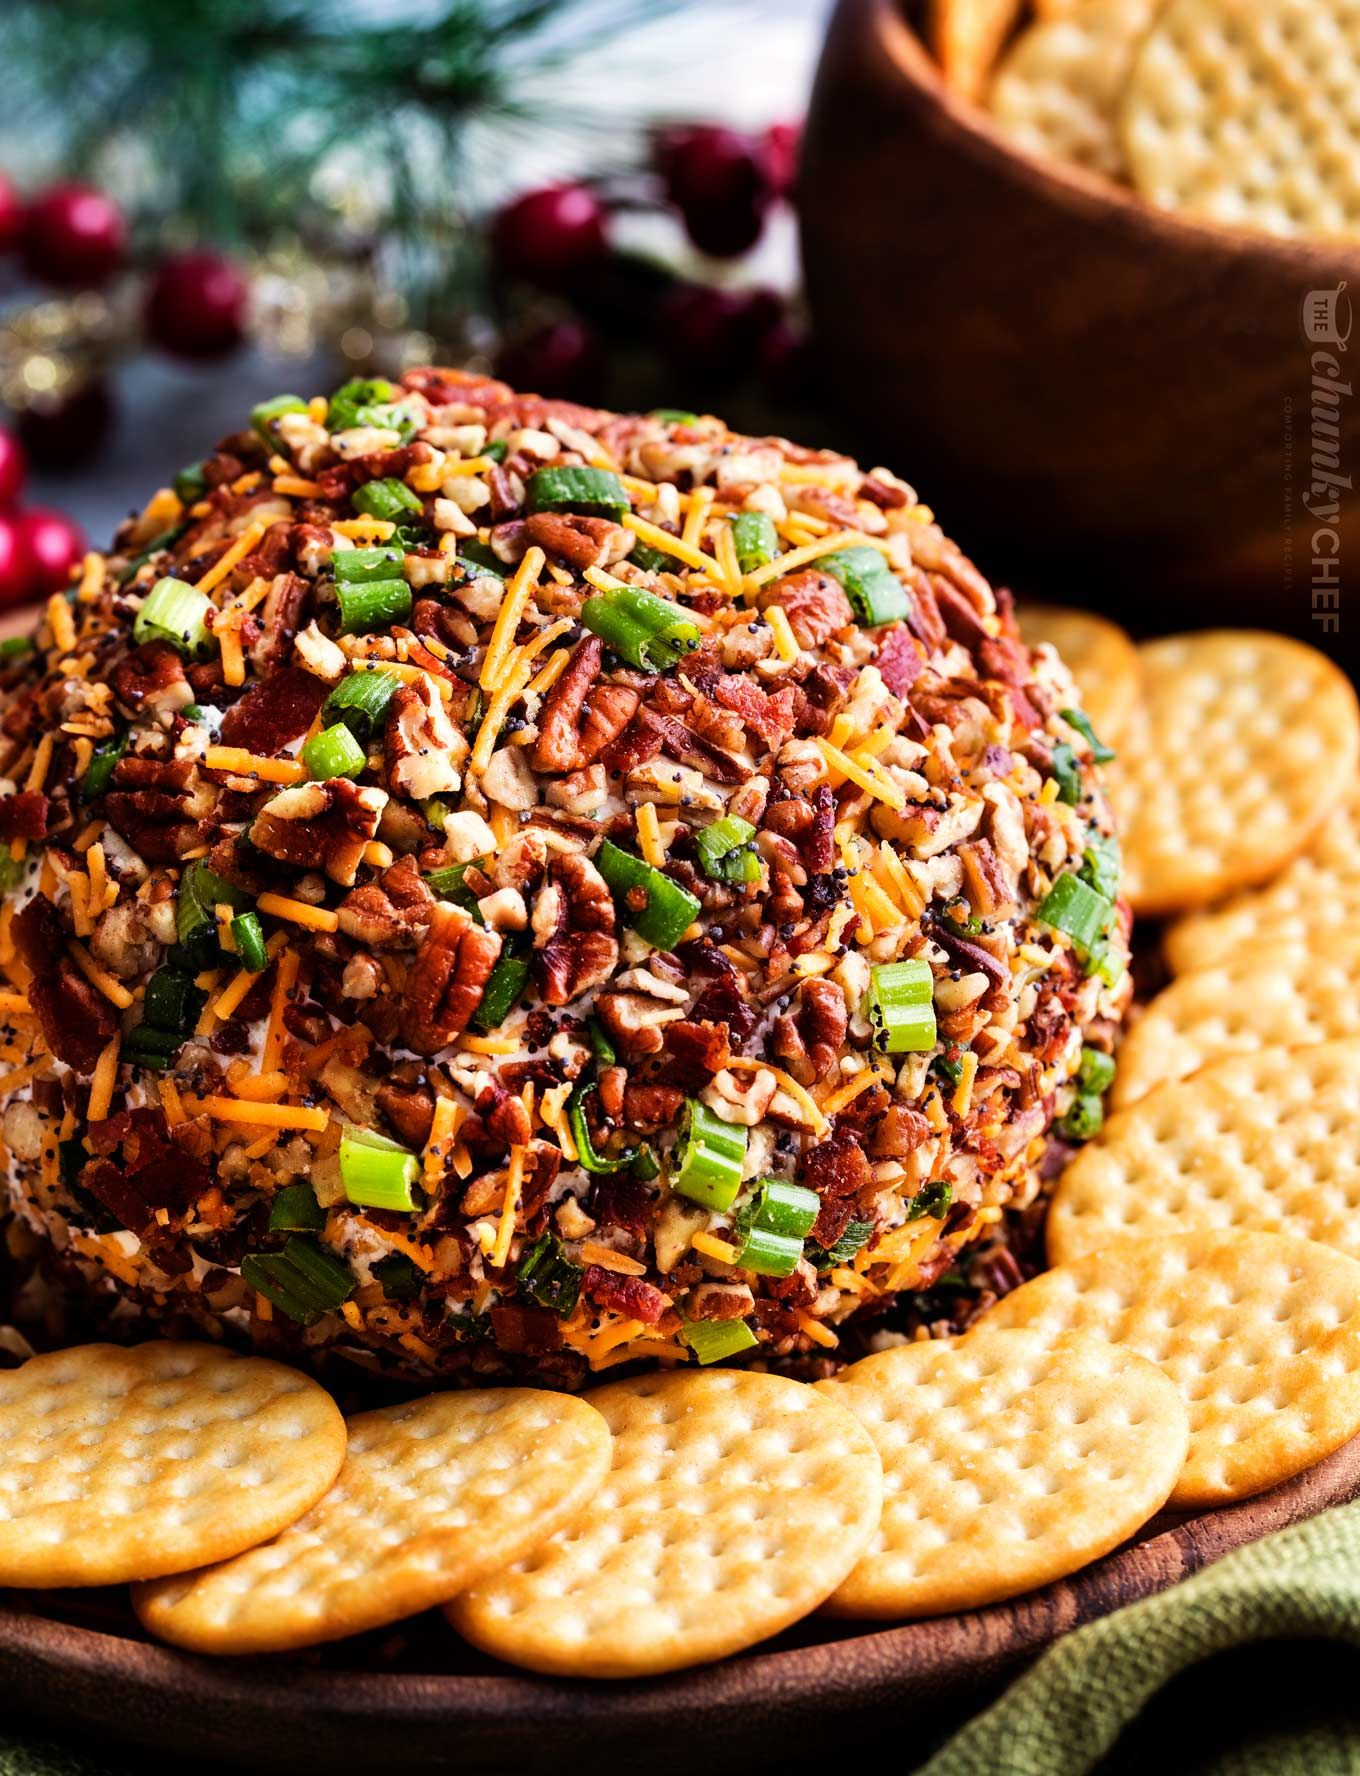 The Ultimate Bacon Ranch Cheese Ball is absolutely LOADED with bold flavors, and a perfect crowd-pl